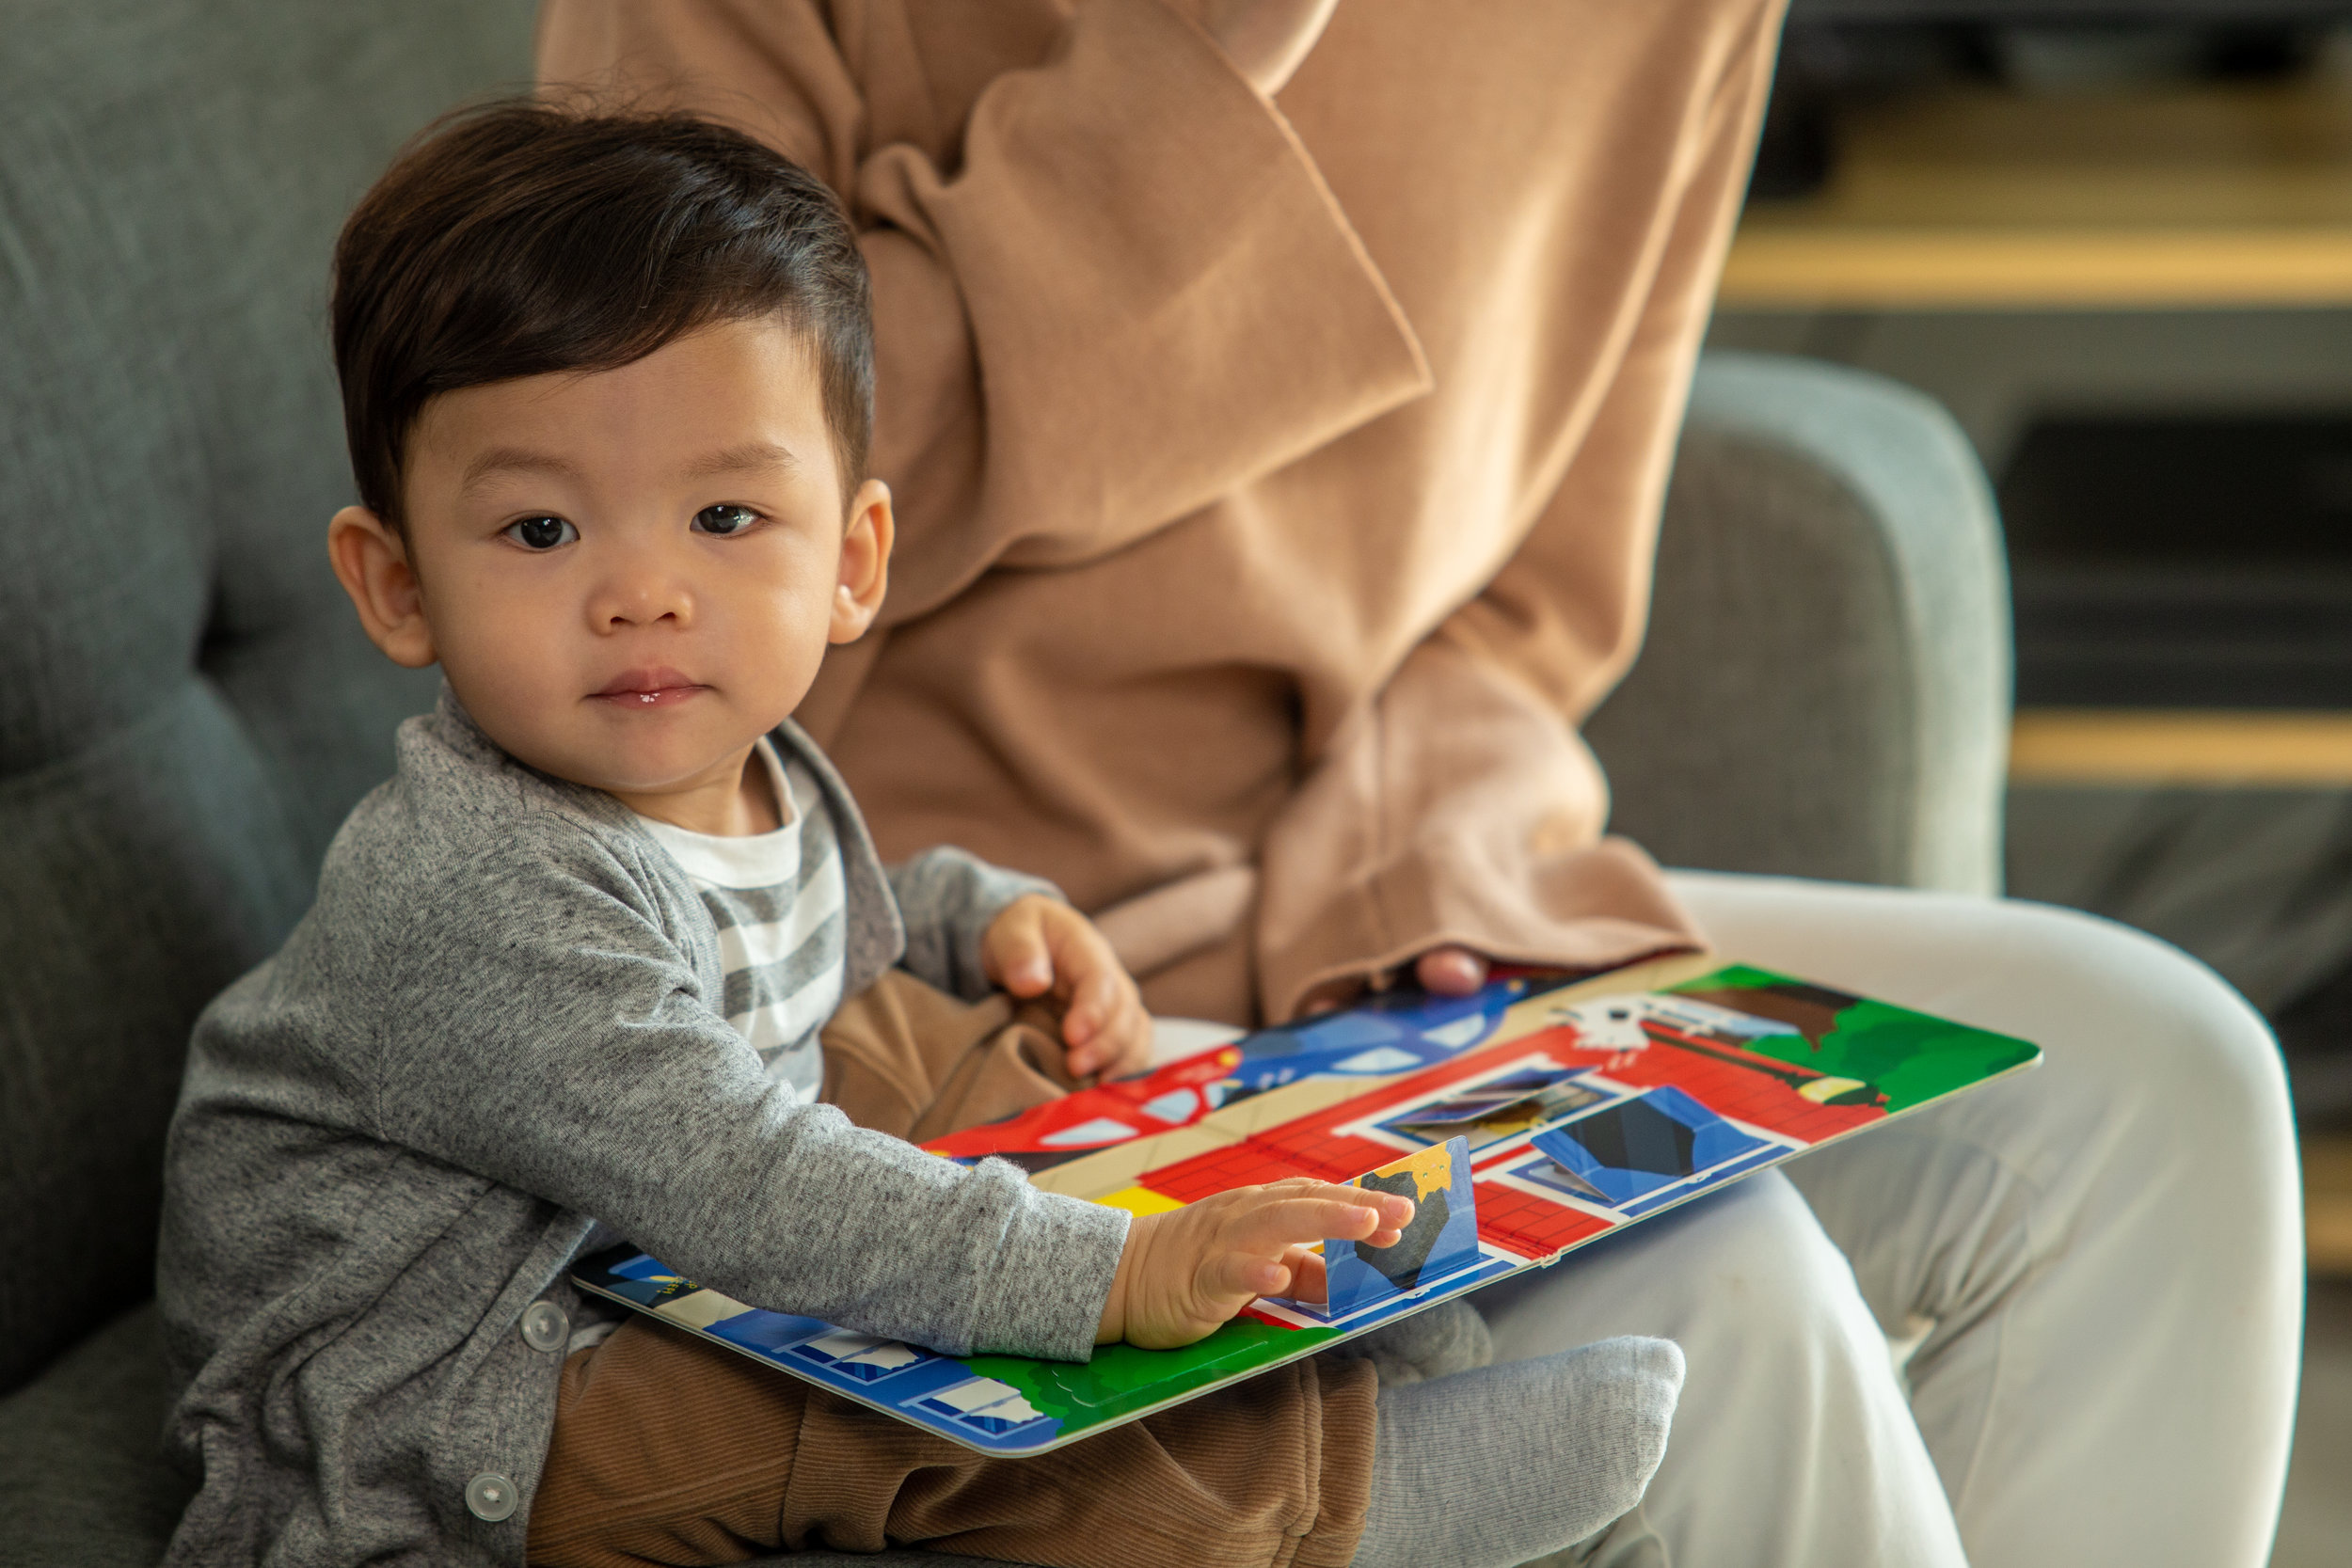 Reach MilestonesMiles Ahead - Bring playgroup home with age-appropriate materials and activities